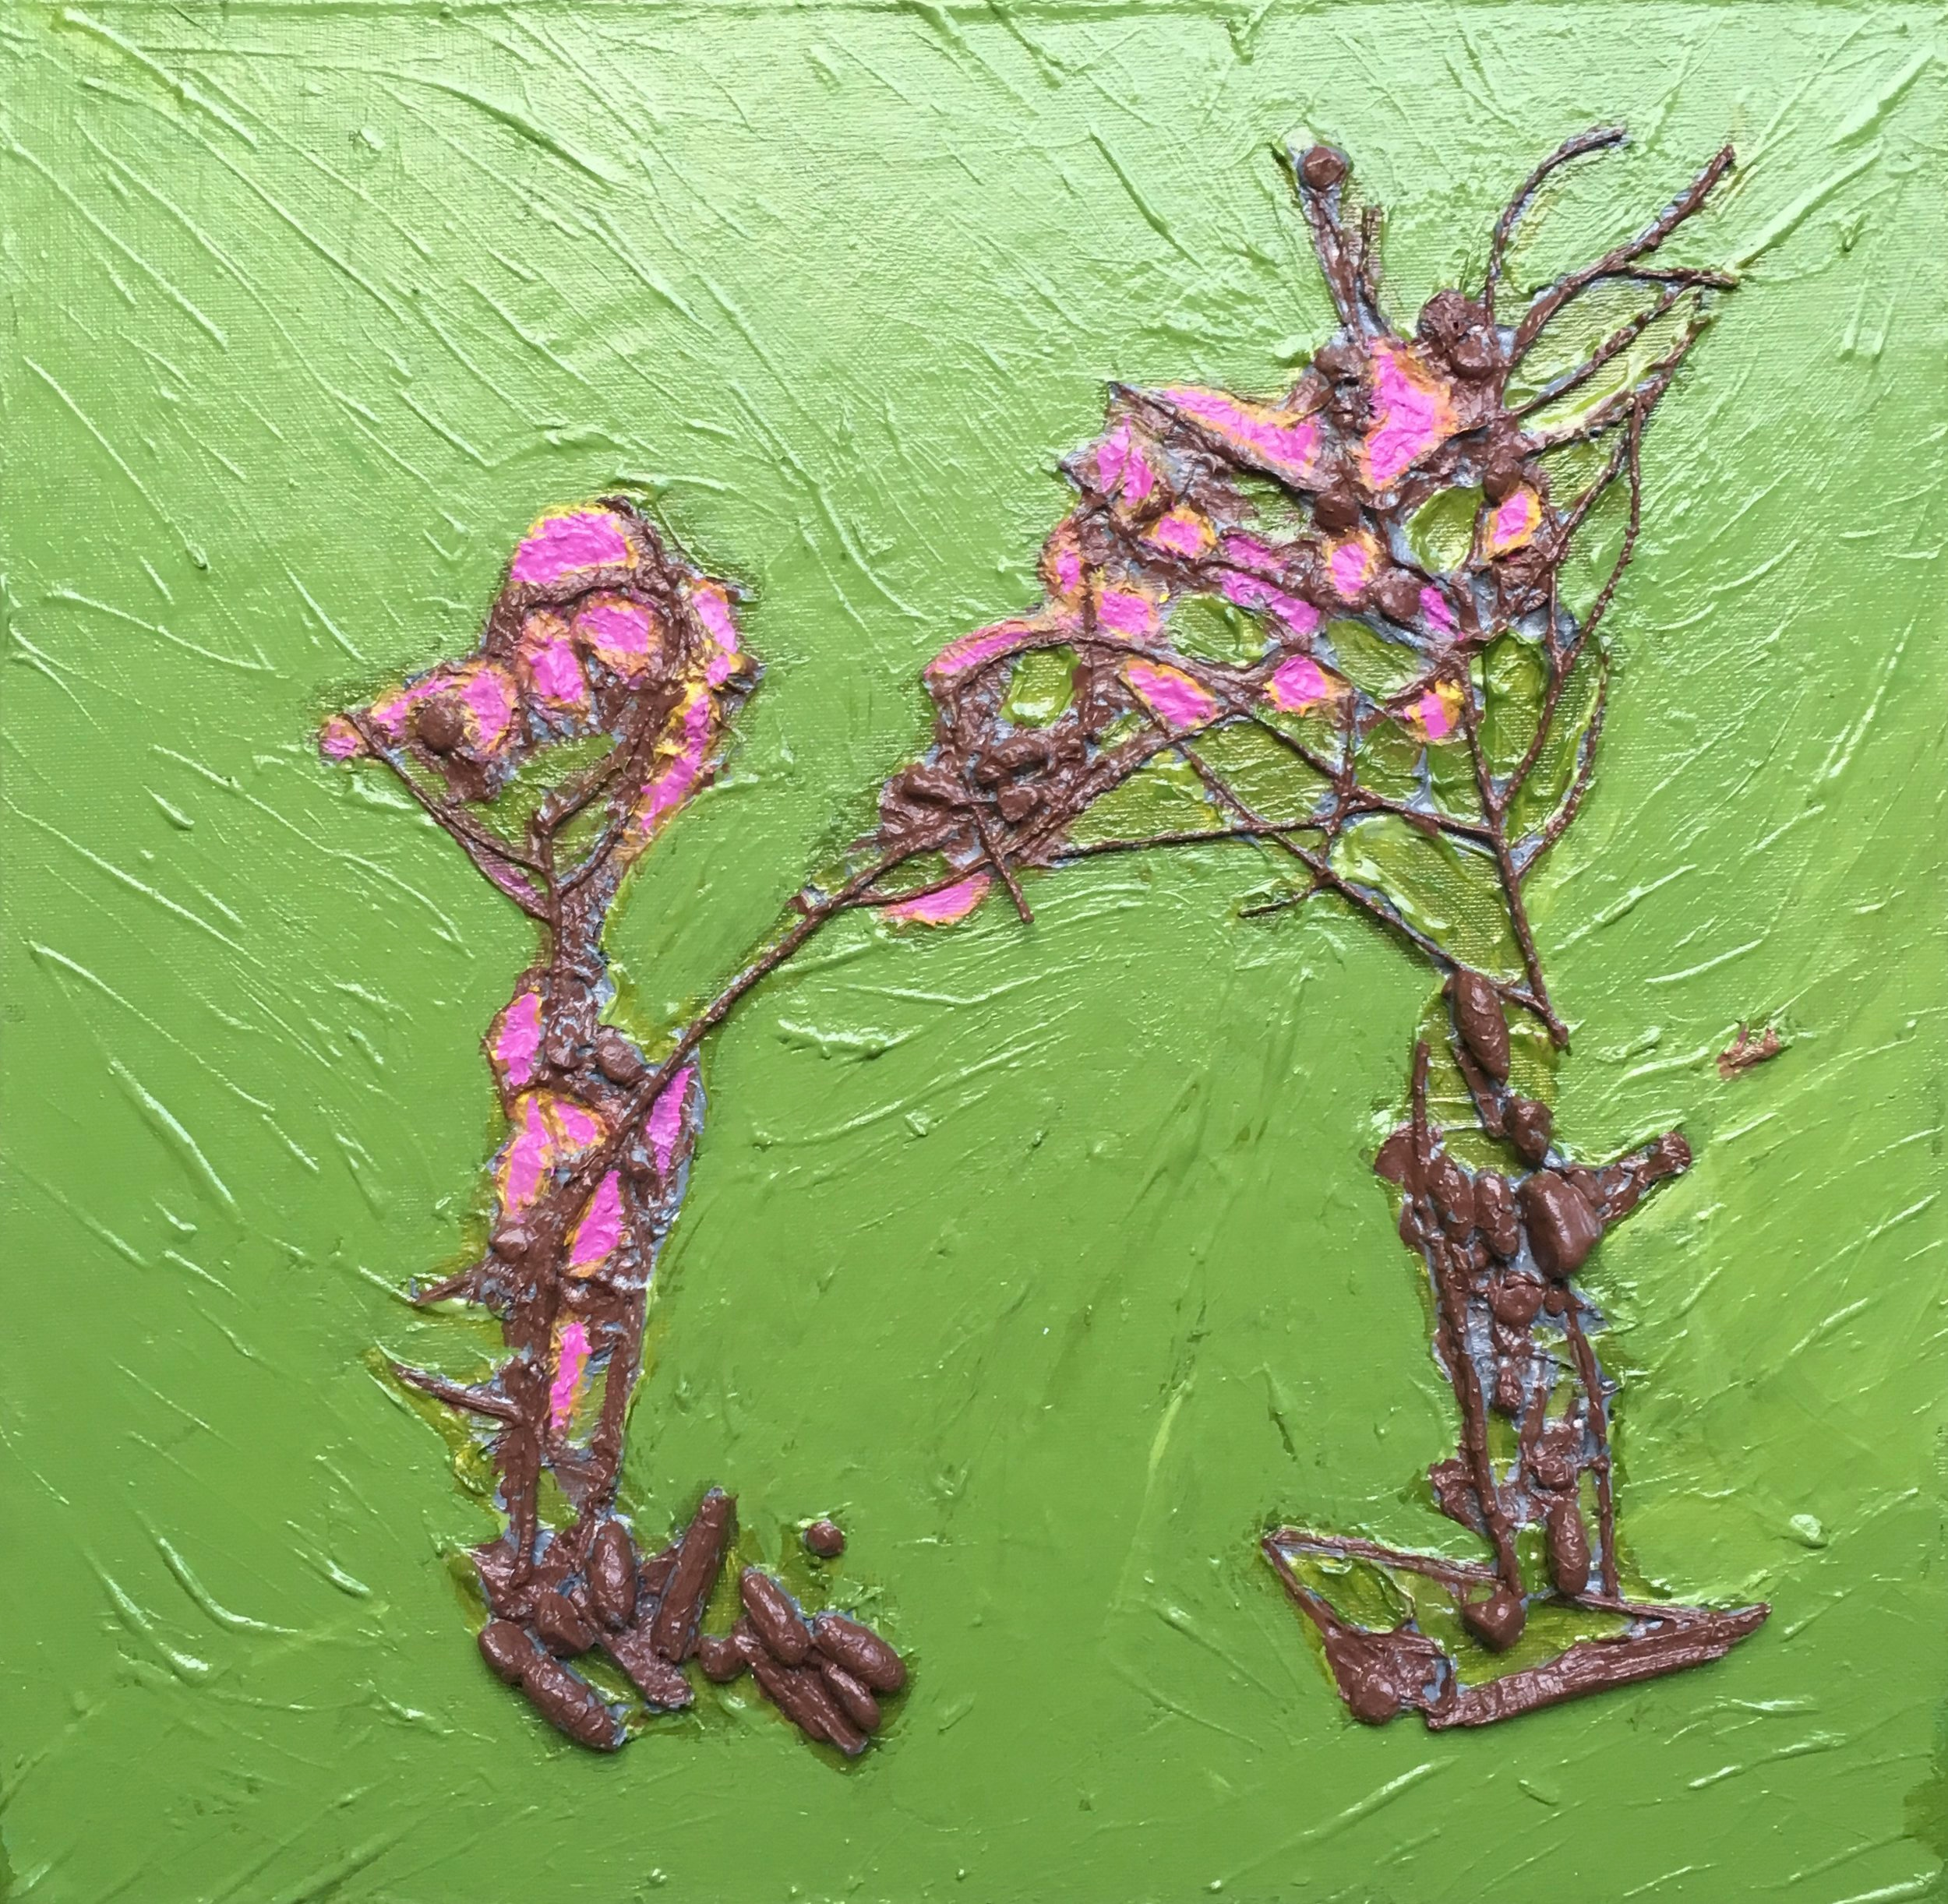 """Title """"June 10th-June 11th, 2019. 80602 Benmiller Line, Benmiller, ON. Right path beside house looking towards the Maitland River.""""  Acrylic polymer, acrylic paint, on twigs, soil, stones, small cones (pine) Dandelion heads and seeds (fluffy)  Unframed Size 15 1/4"""" W X 15""""H"""